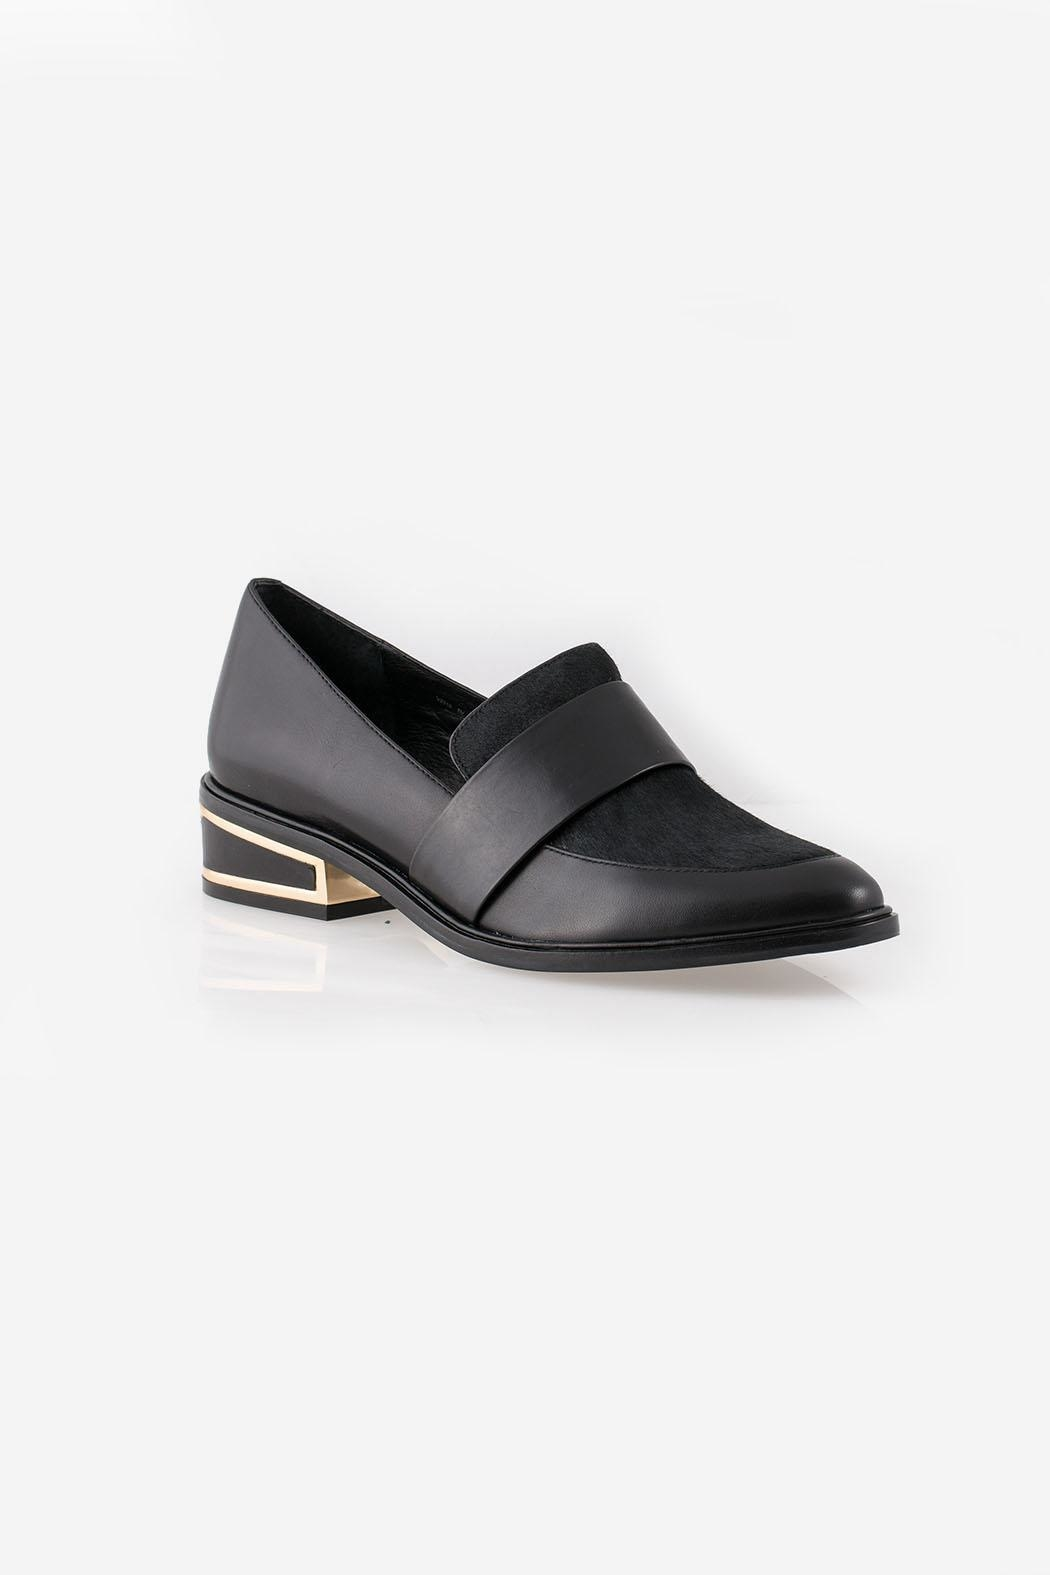 Rachel Zoe Bianca Calf Loafers - Side Cropped Image